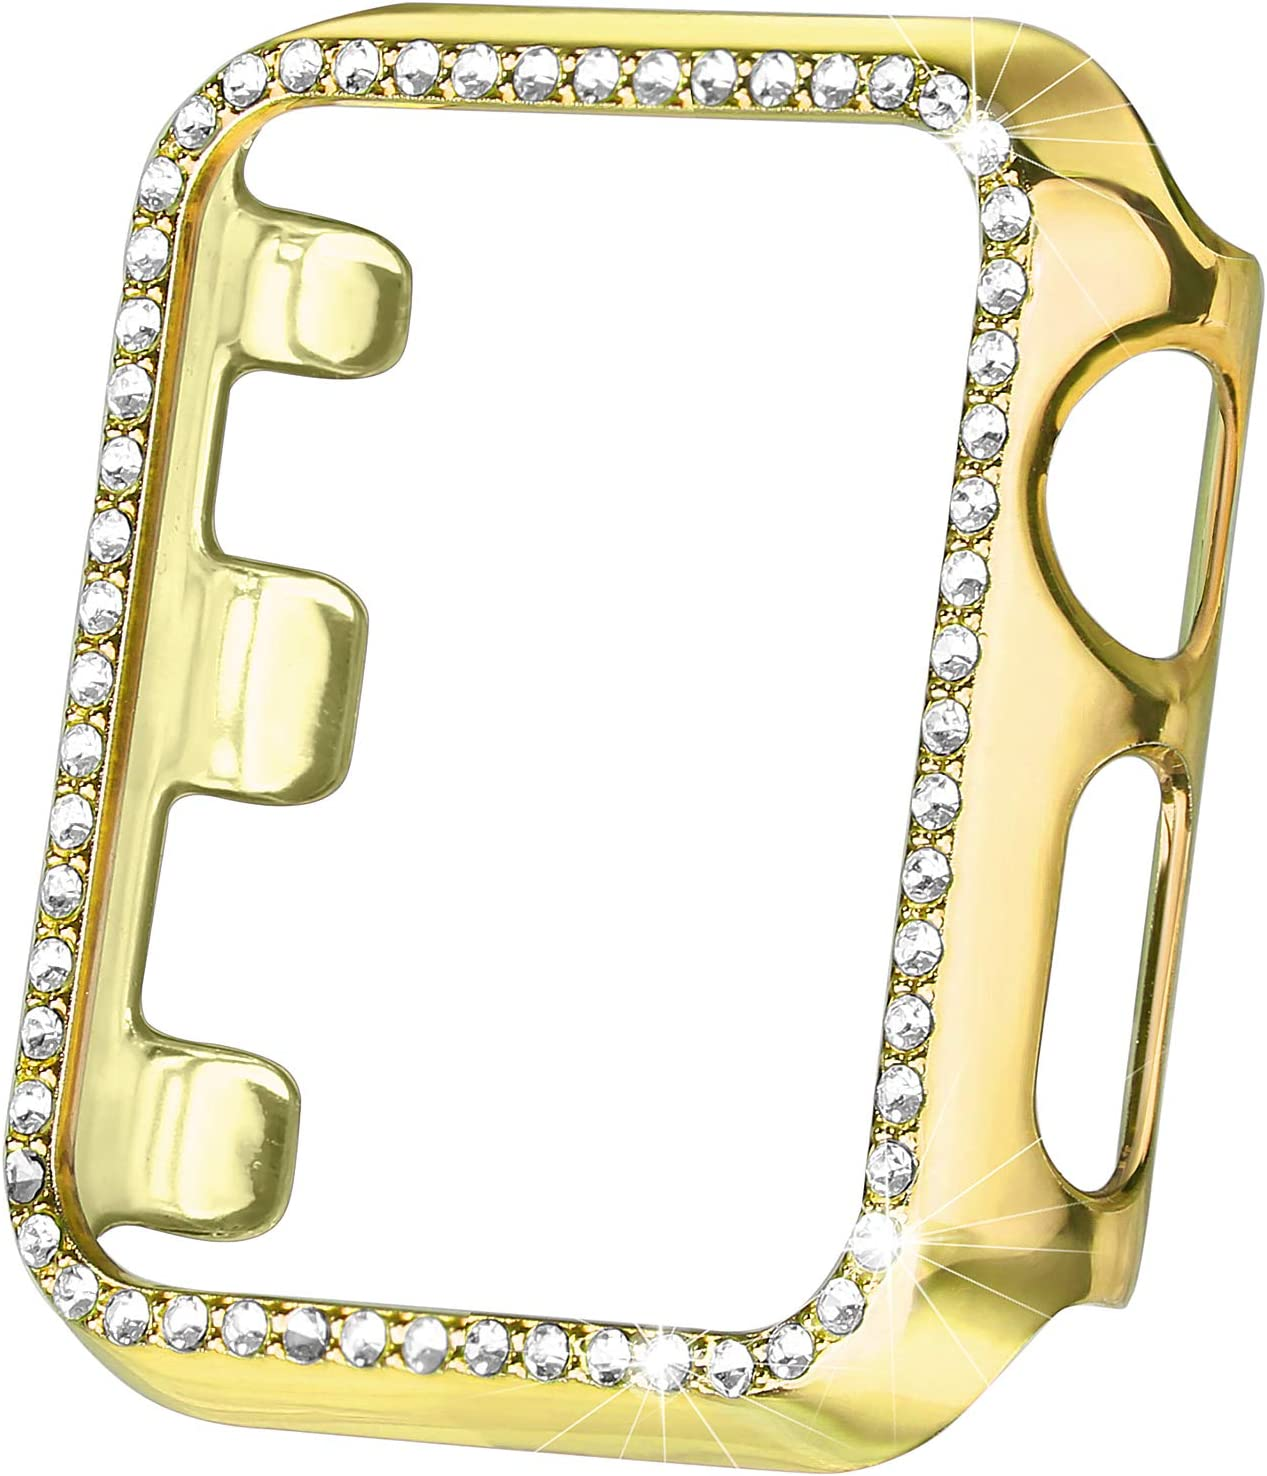 Secbolt 38mm Case Compatible with Apple Watch Band, Bling Full Cover Bumper Protective Frame Screen Protector for iWatch Series 3/2/1 (Yellow Gold-38mm)